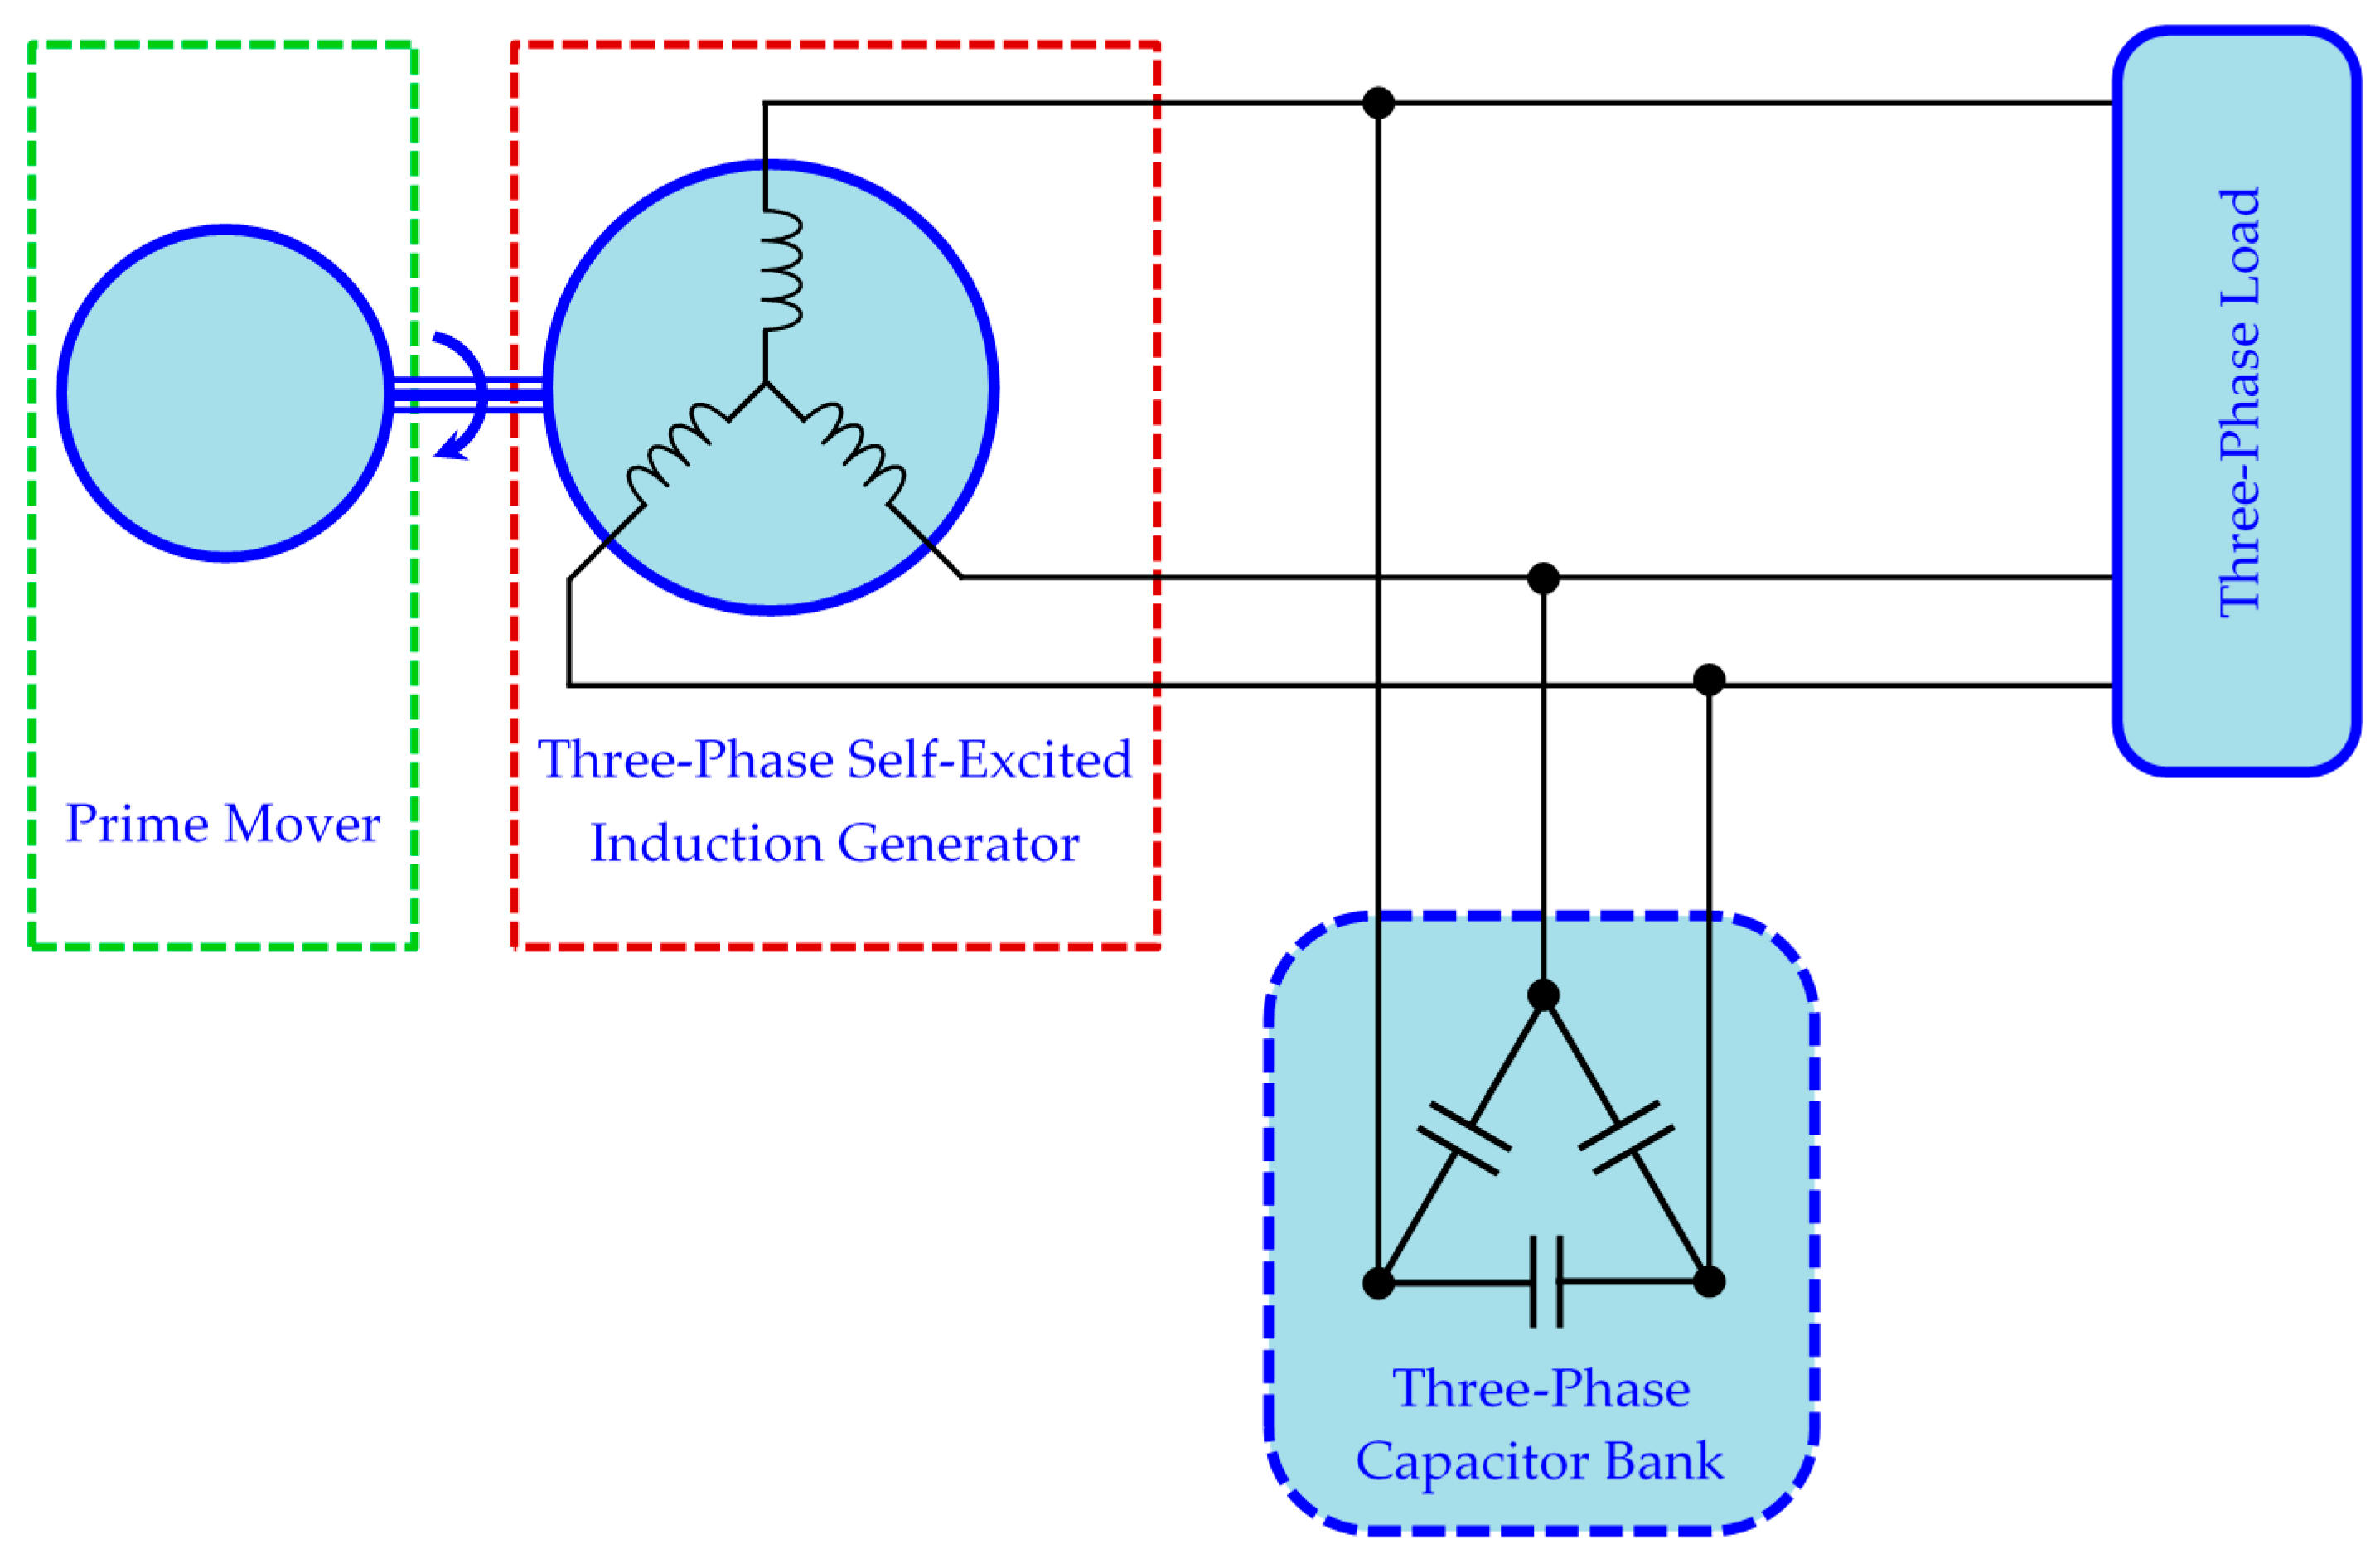 Energies Free Full Text Magnetization Dependent Core Loss Model Current Generator Diagram Moreover R Circuit 11 03228 G001 Figure 1 Schematic